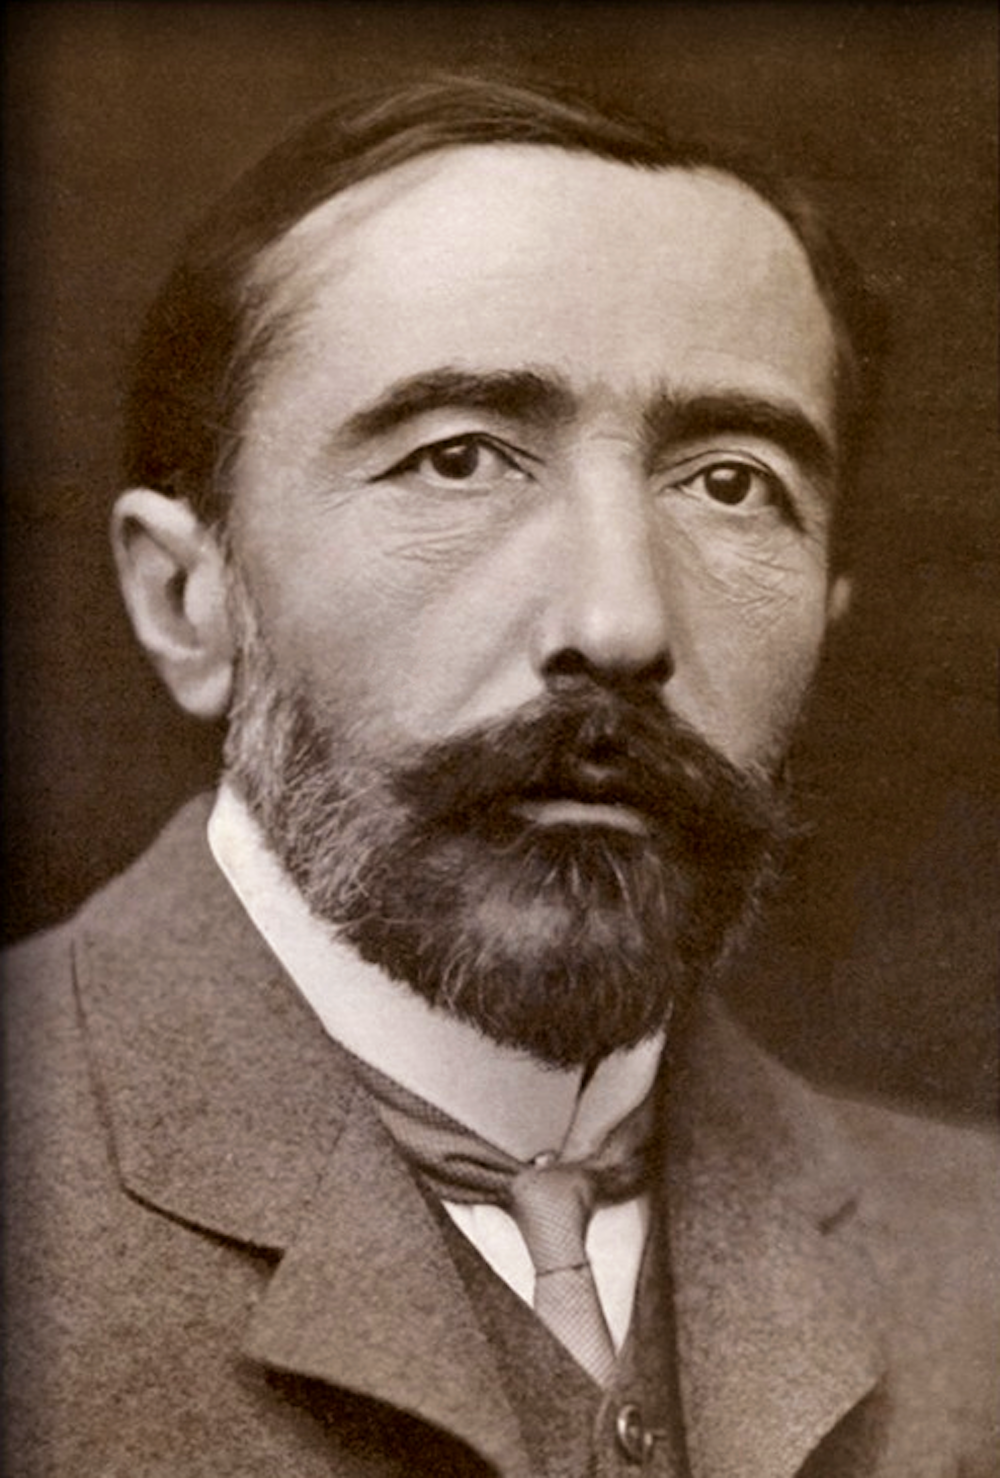 How Conrads Imperial Horror Story Heart Of Darkness Resonates With  Joseph Conrad Wikimedia